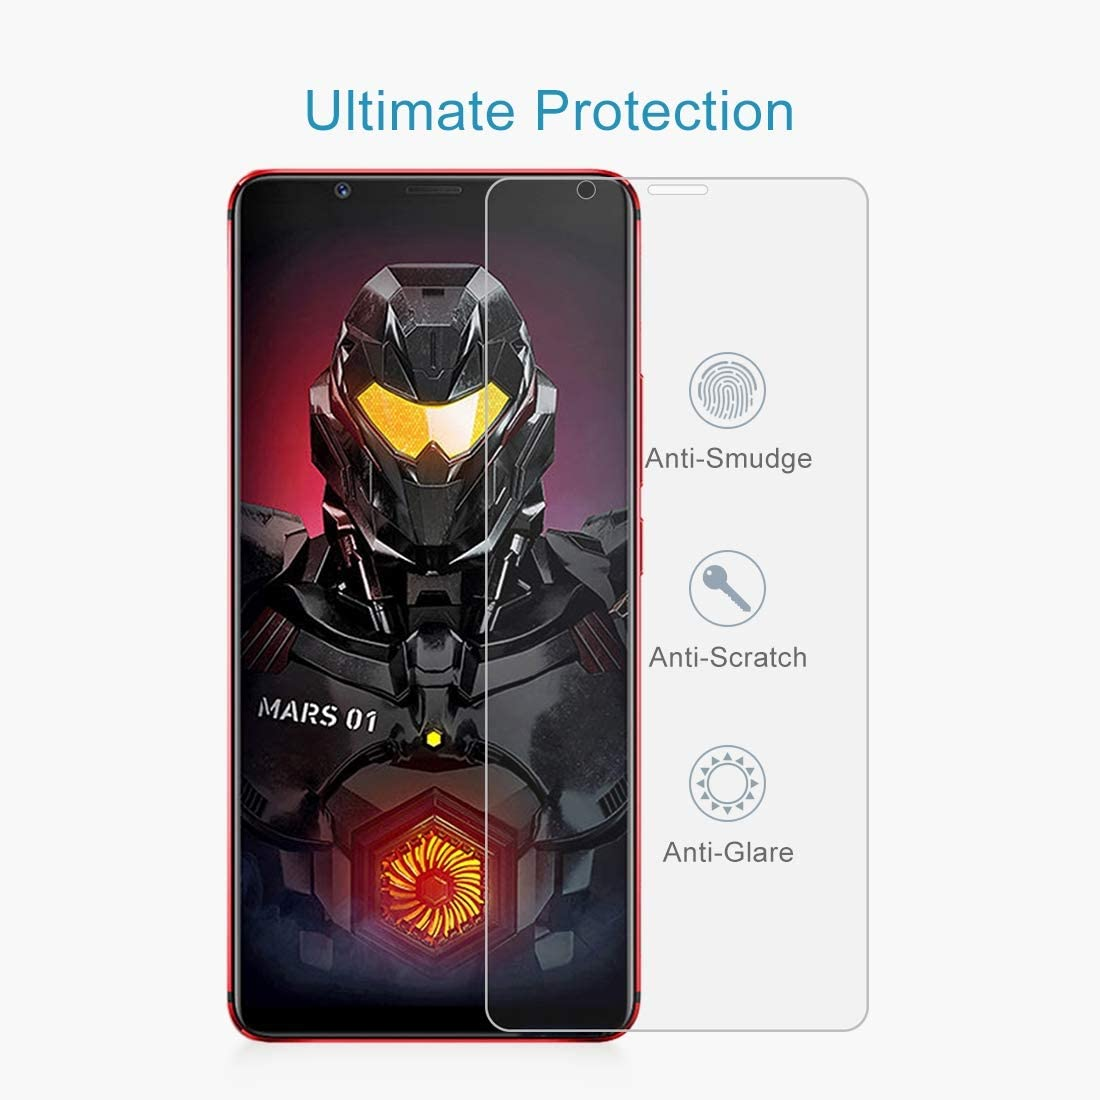 YINZHI Screen Protector Film 100 PCS 0.26mm 9H 2.5D Explosion-Proof Tempered Glass Film for ZTE Nubia Red Magic Mars Clear